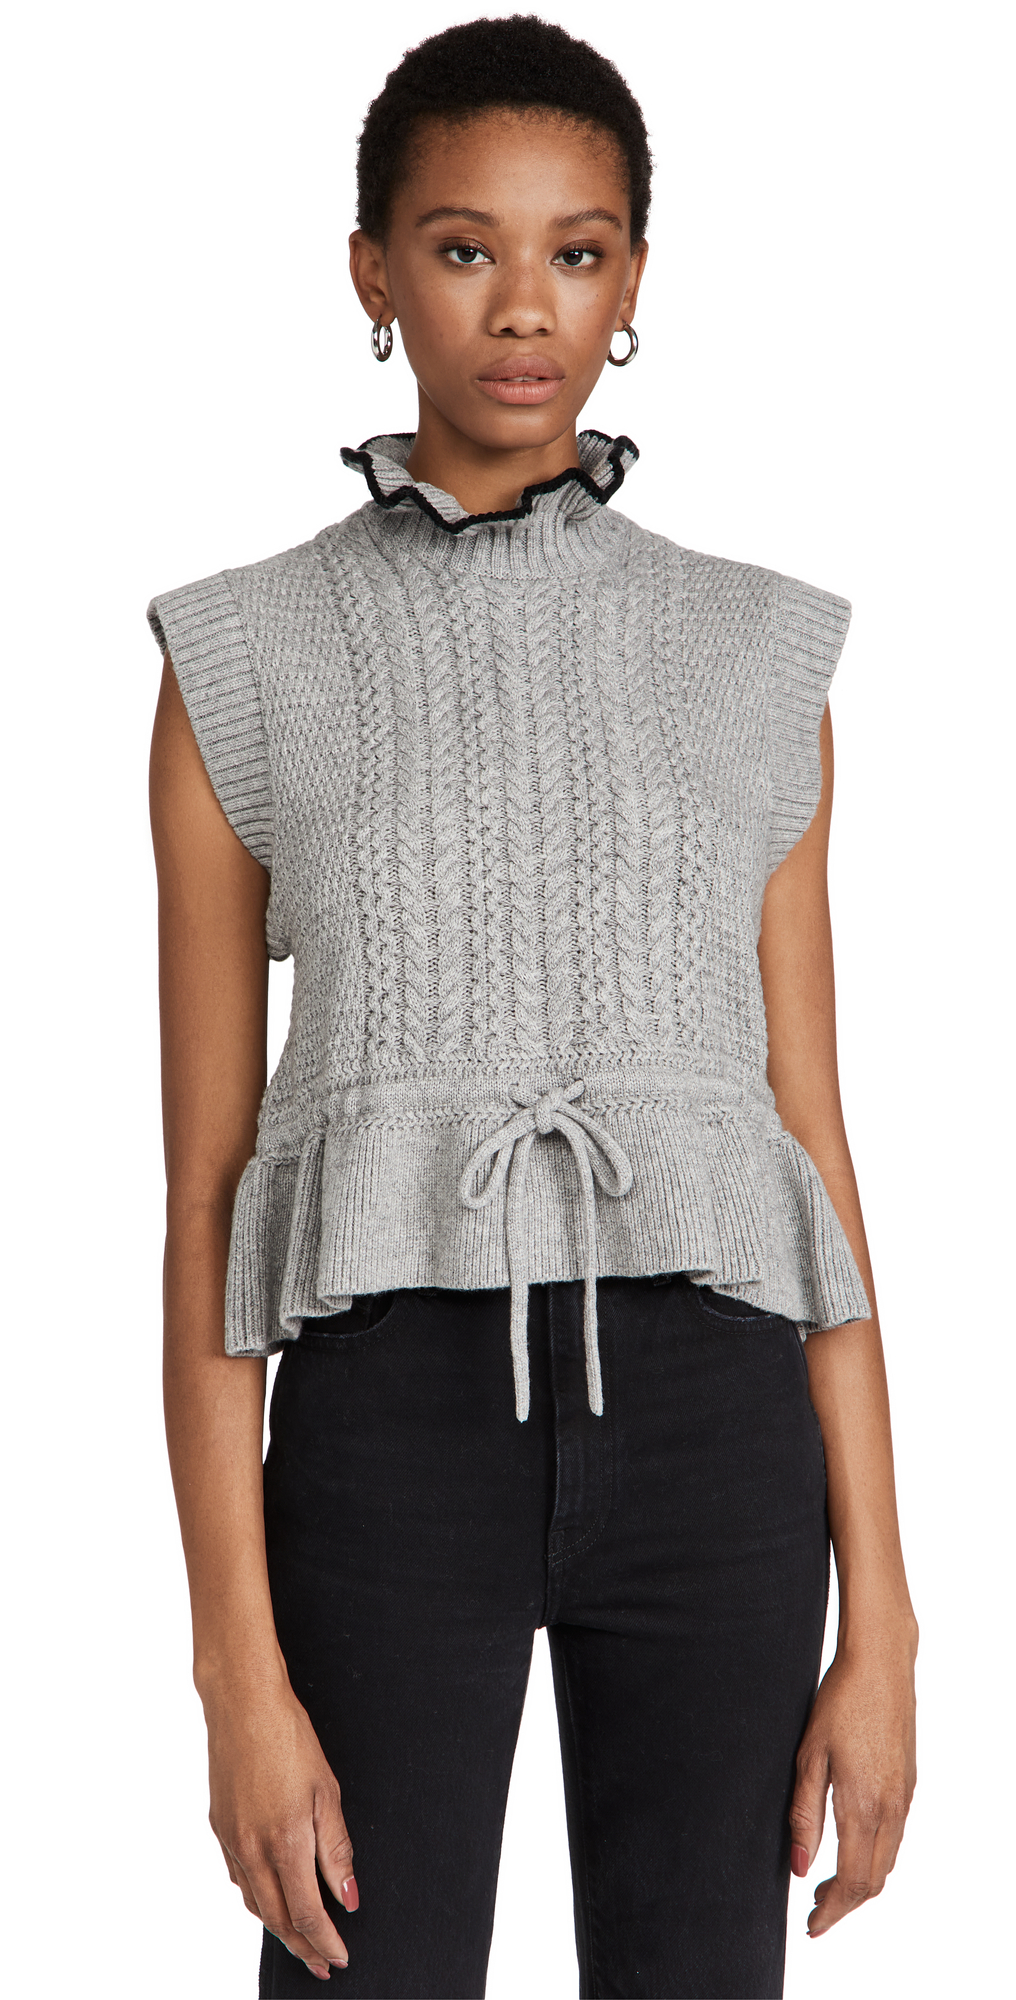 Irma Knitted Vest